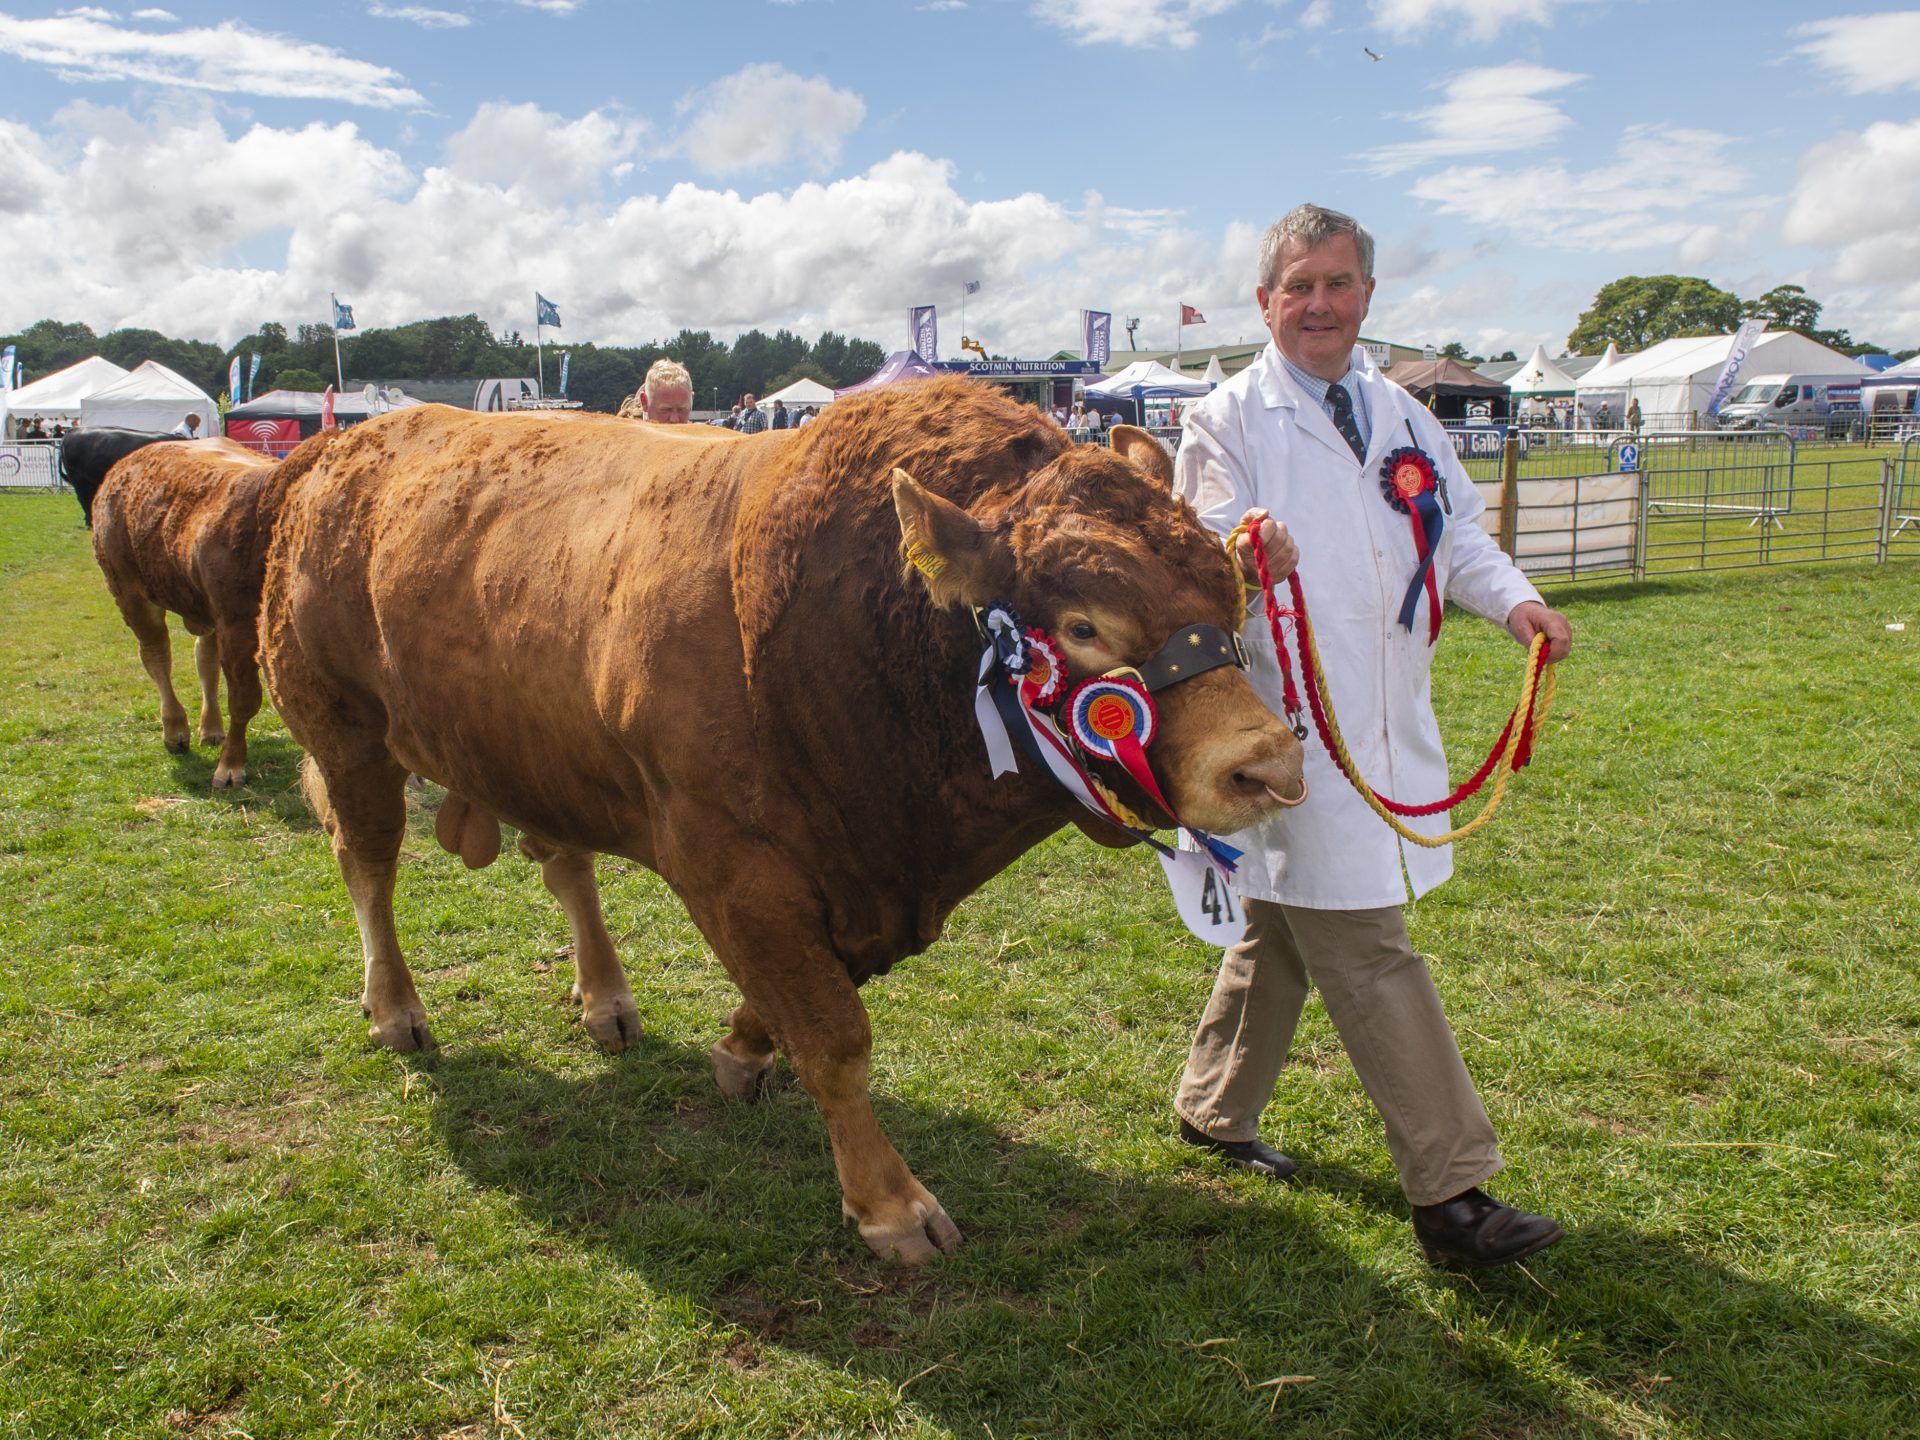 Cattle parade at the Border Union Show in Kelso